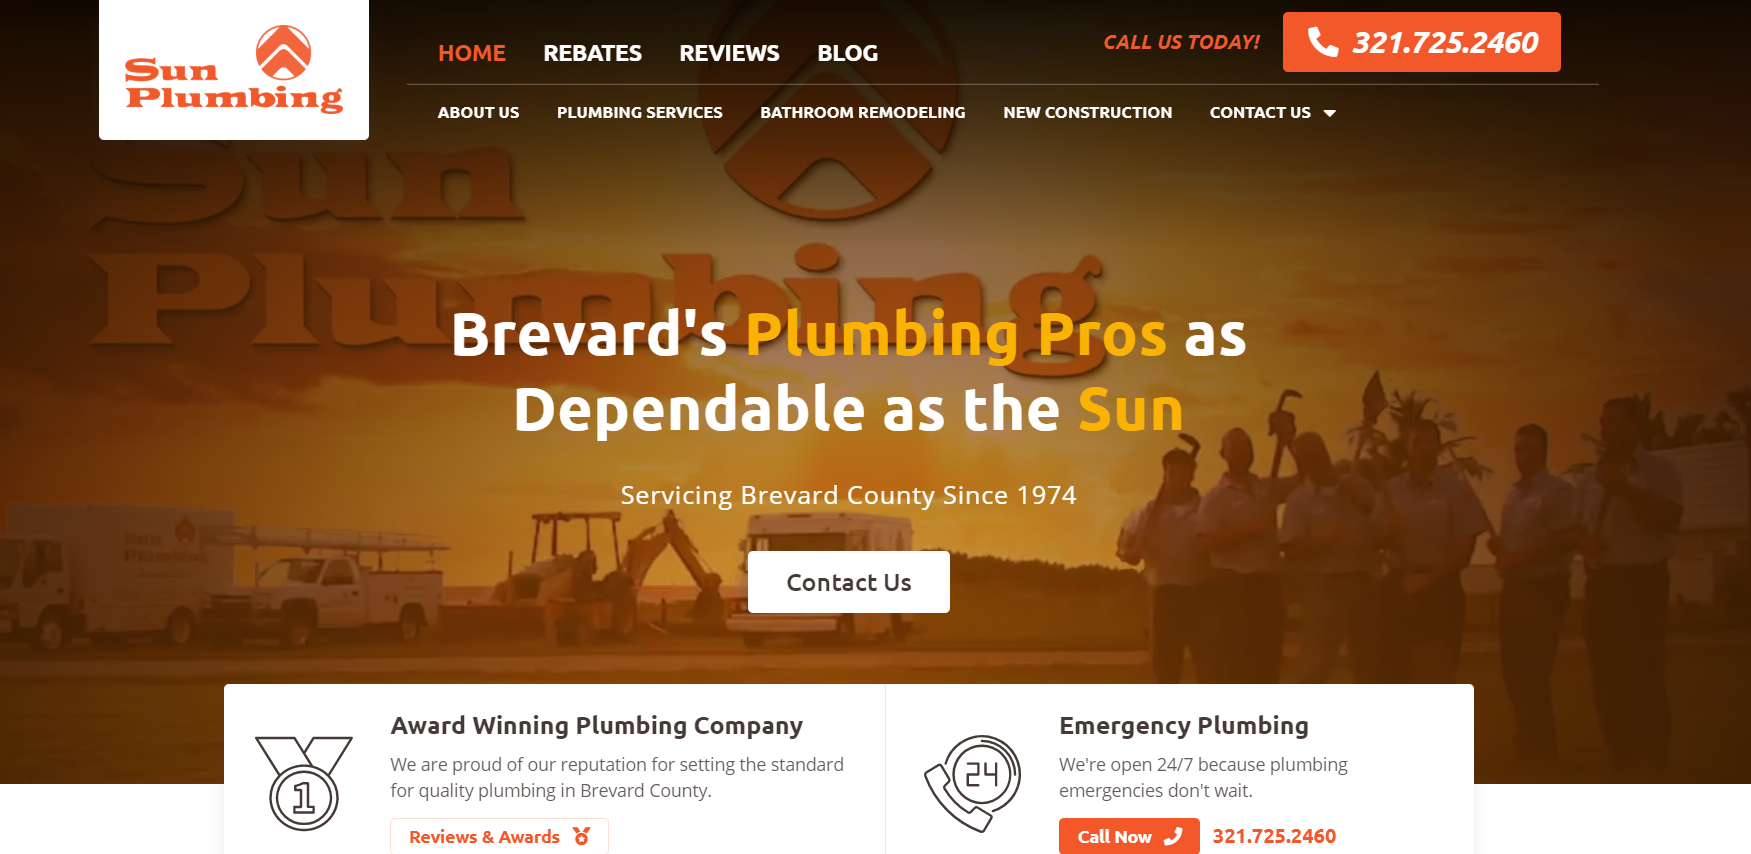 Reputation Management – The Cherry on Top of Sun Plumbing's Revamped Website